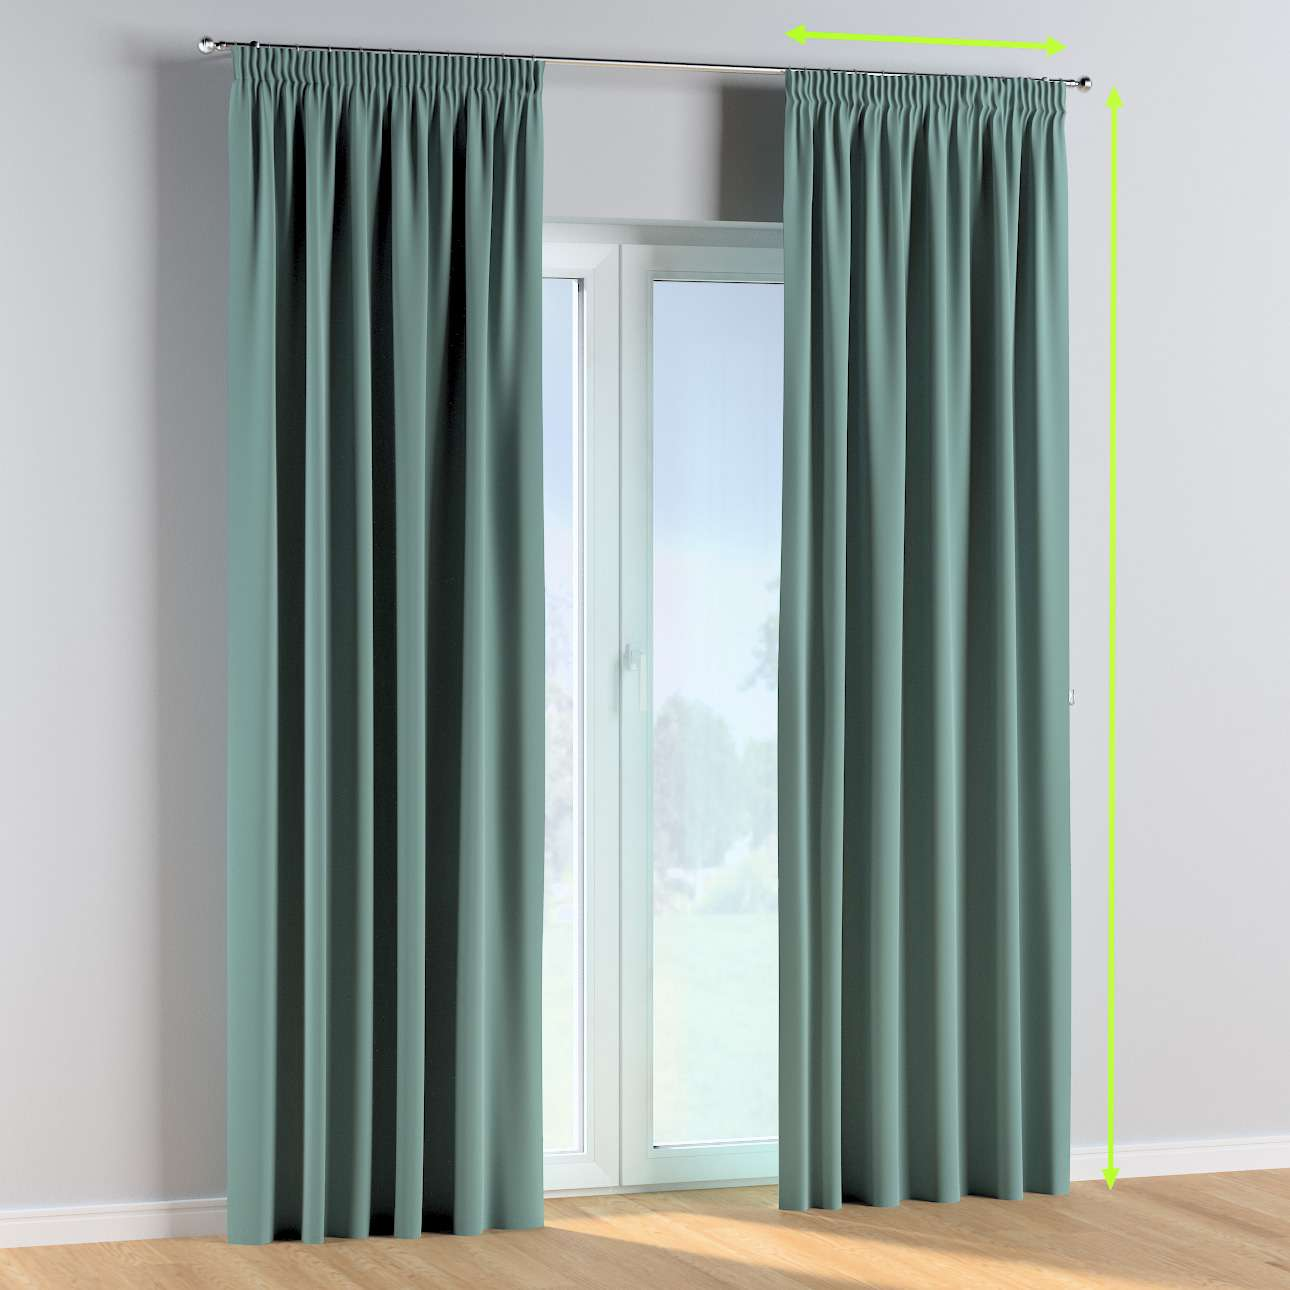 Pencil pleat curtains in collection Posh Velvet, fabric: 704-18